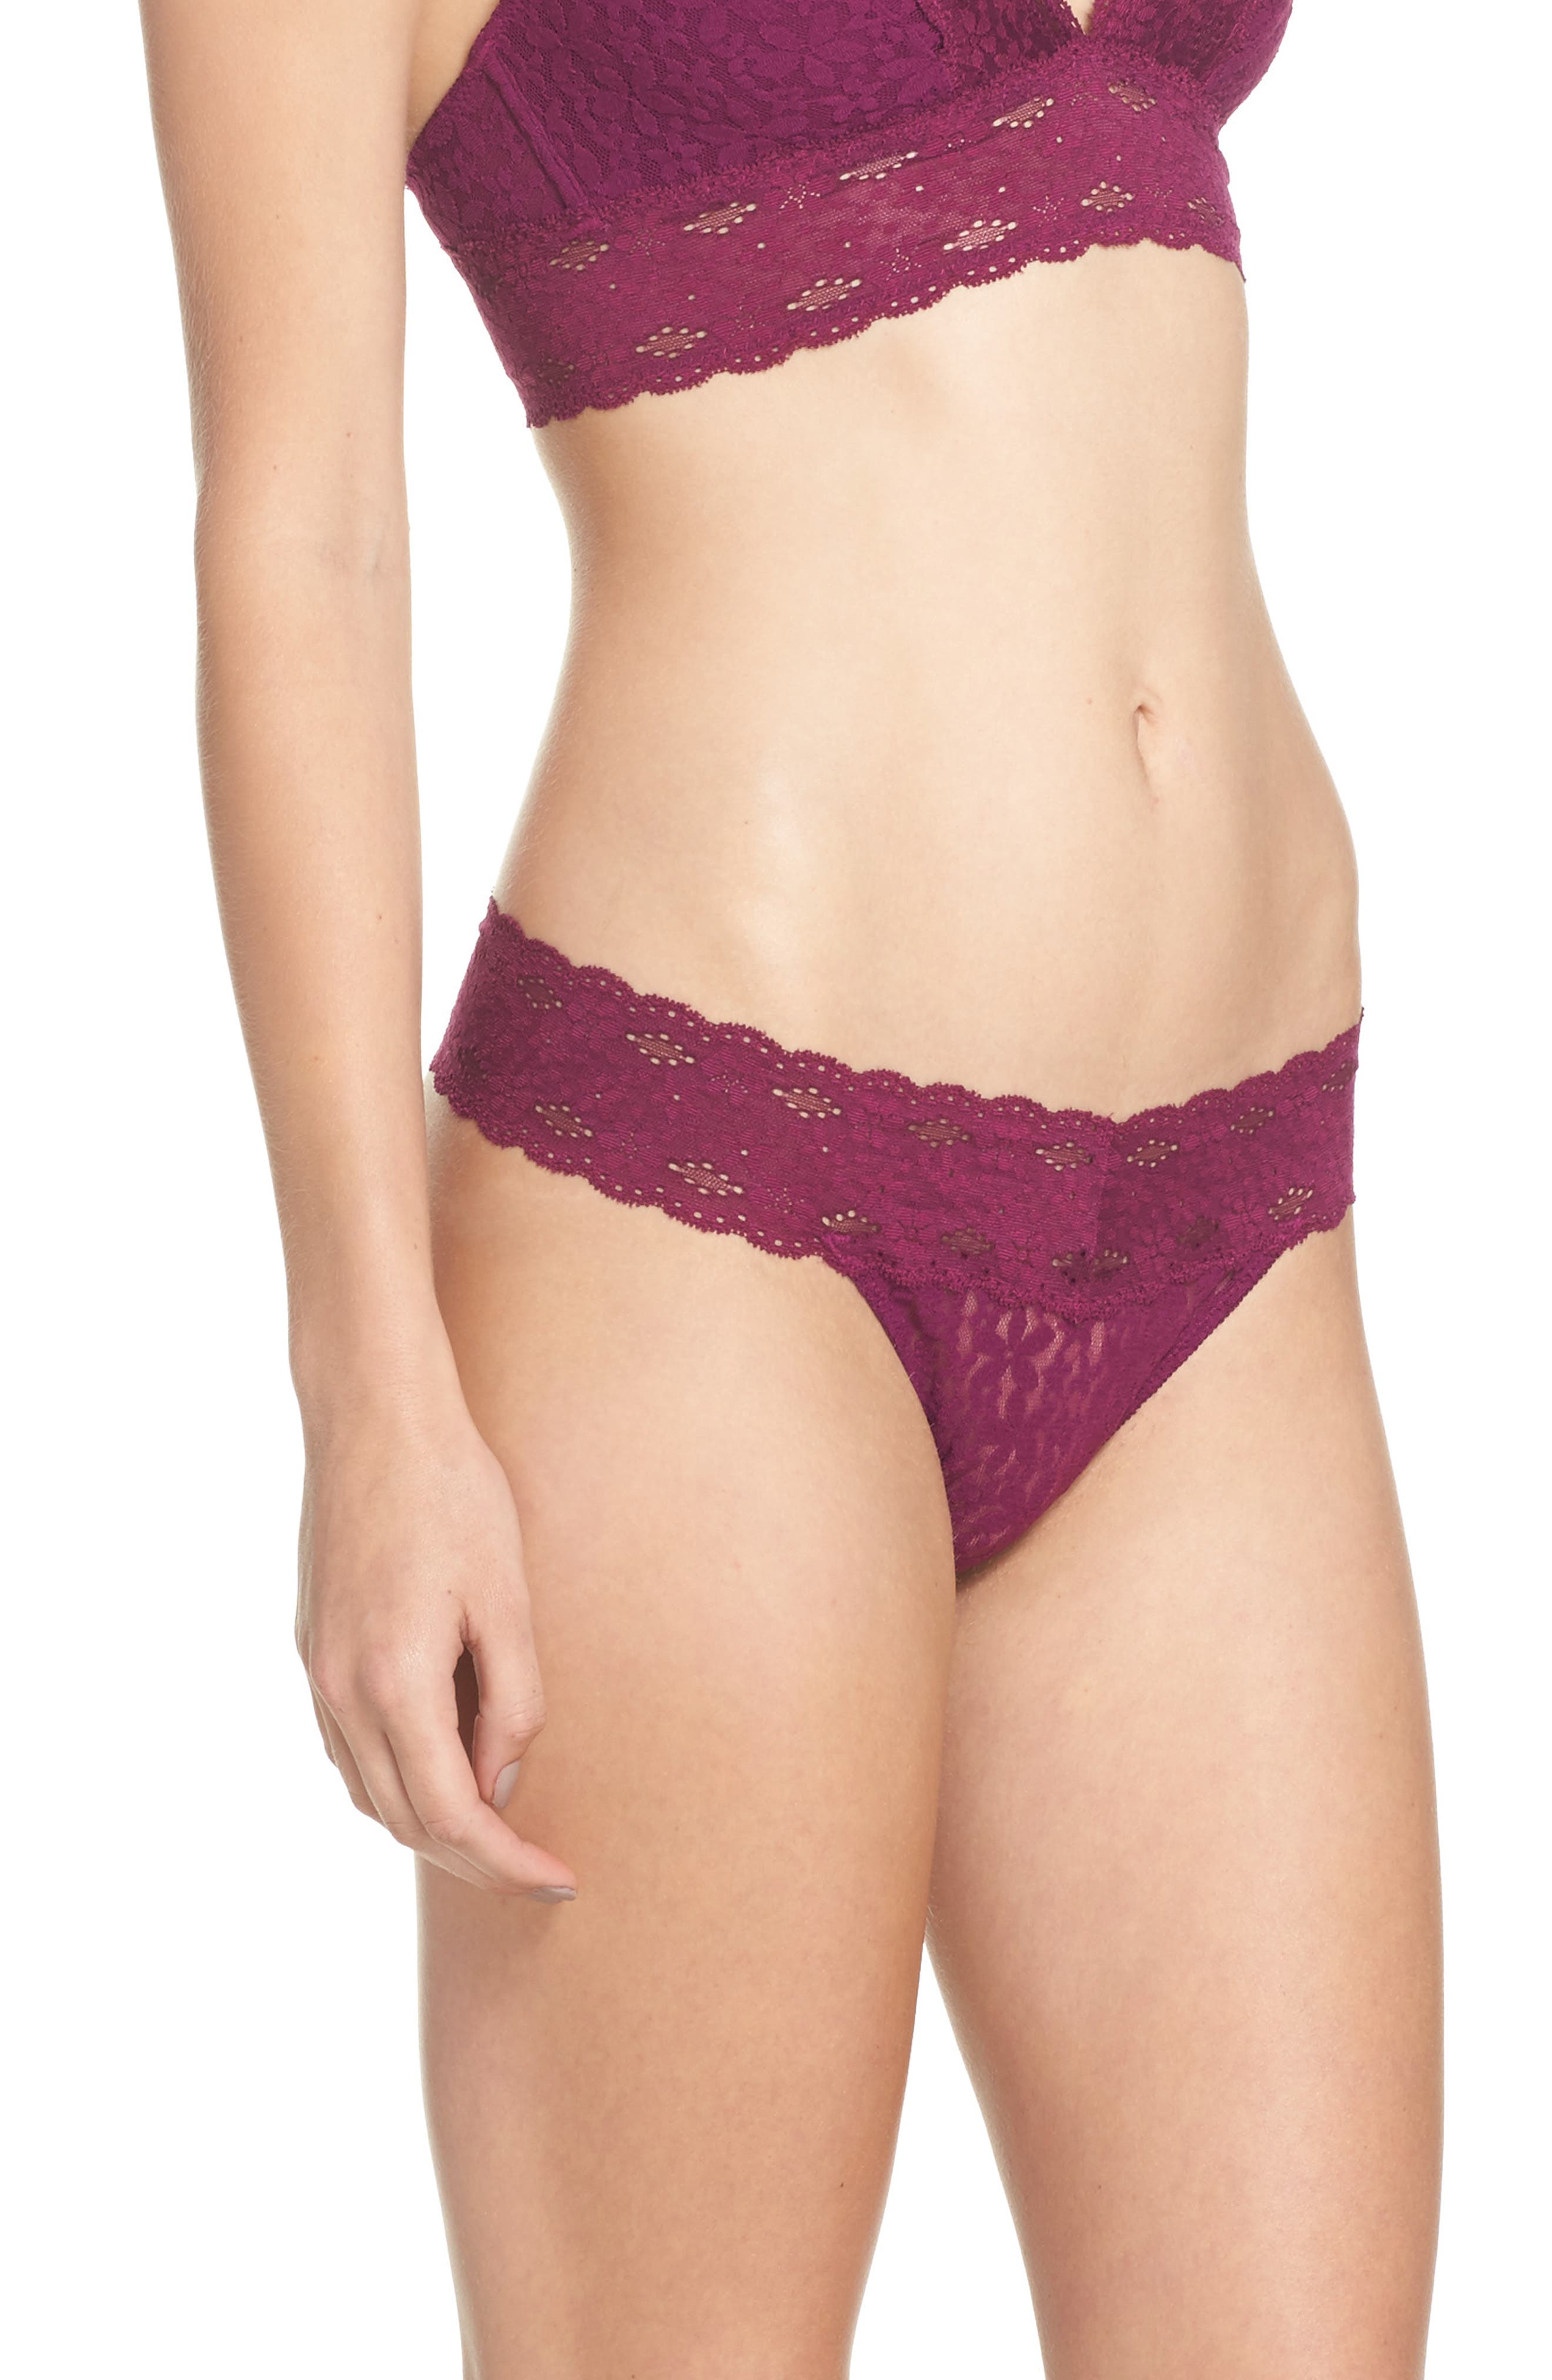 Alternate Image 3  - Wacoal Halo Lace Thong (3 for $39)